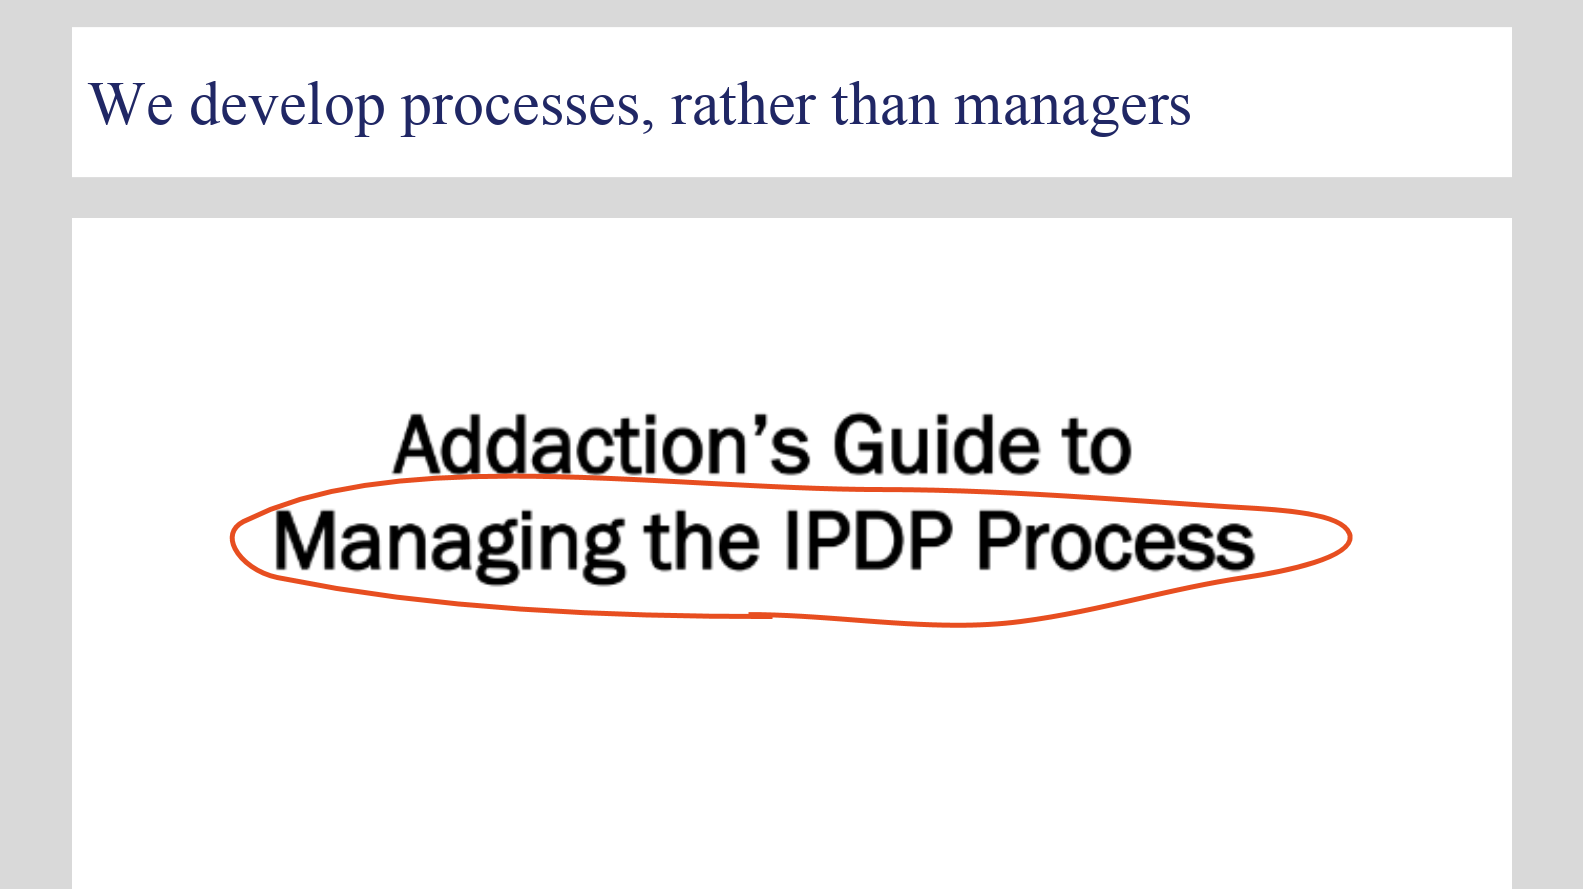 """A slide from early discovery work showing the previous appraisals process guiding document. It says """"we develop processes, rather than managers"""" as the title, with another title below: """"Addaction's Guide to Managing the IPDP Process"""""""